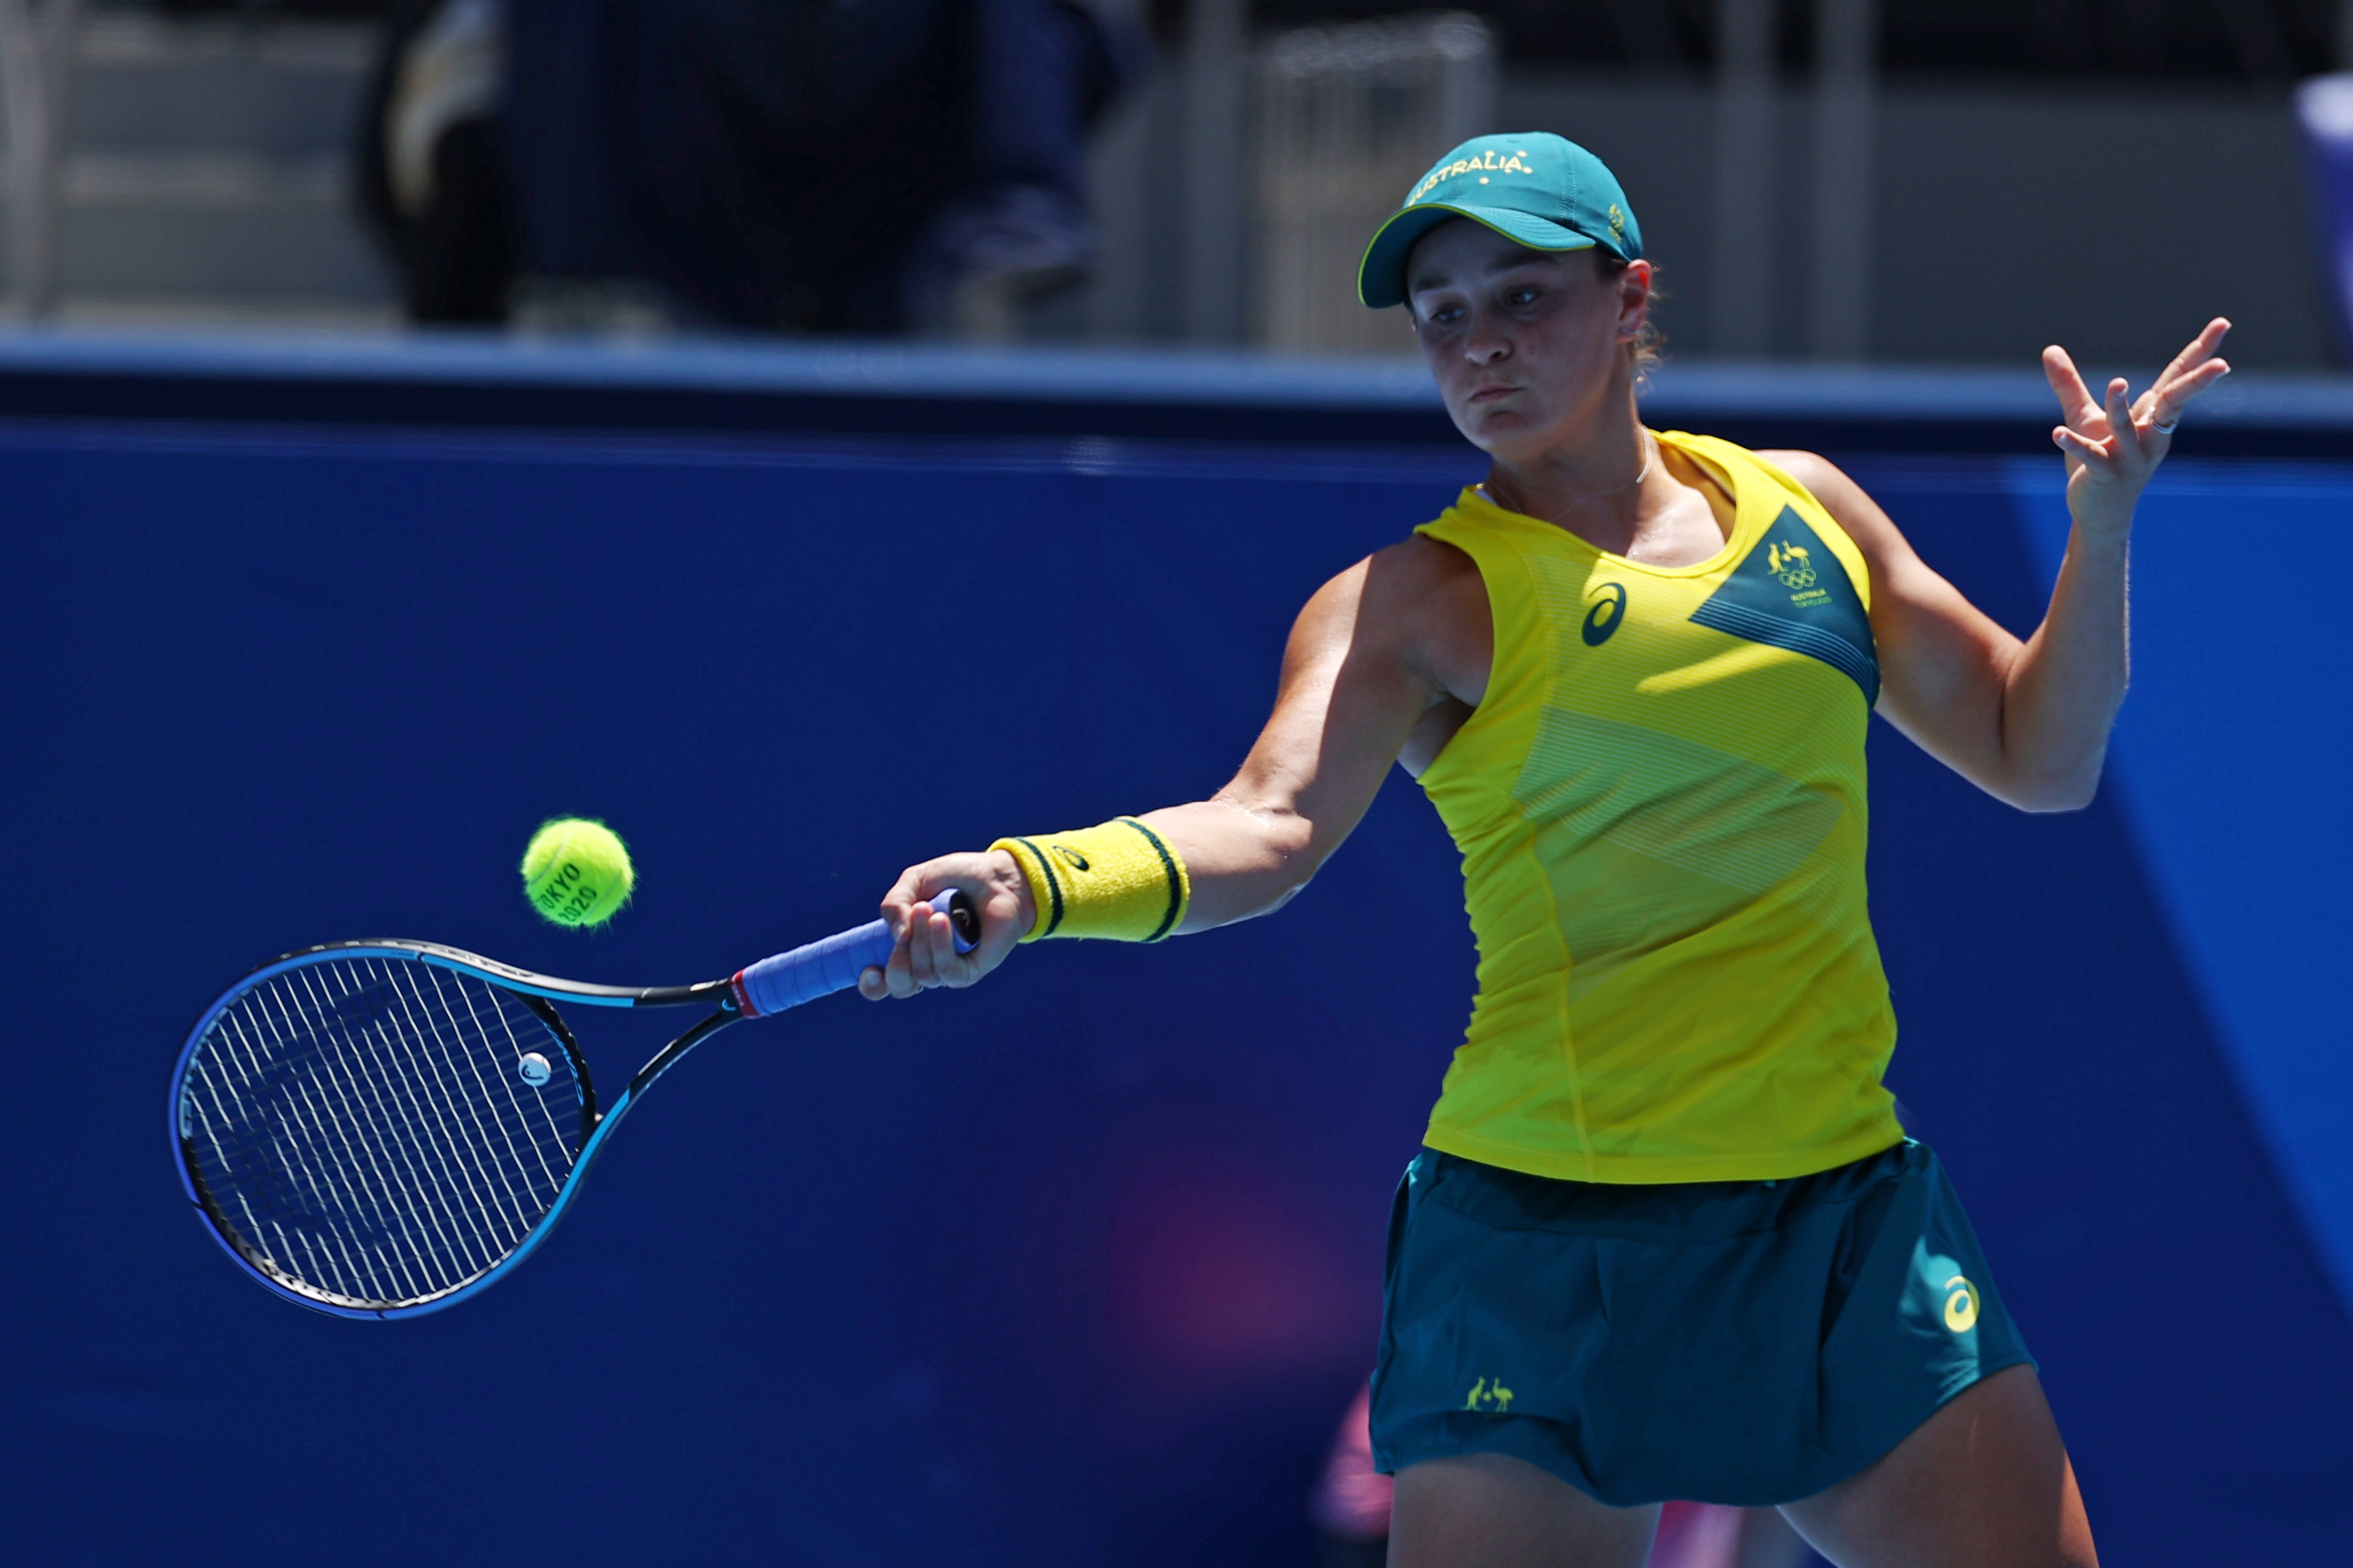 Tokyo 2020 Olympics - Tennis - Women's Singles - Round 1 - Ariake Tennis Park - Tokyo, Japan - July 25, 2021. Ashleigh Barty of Australia in action during her first round match against Sara Sorribes of Spain REUTERS/Edgar Su